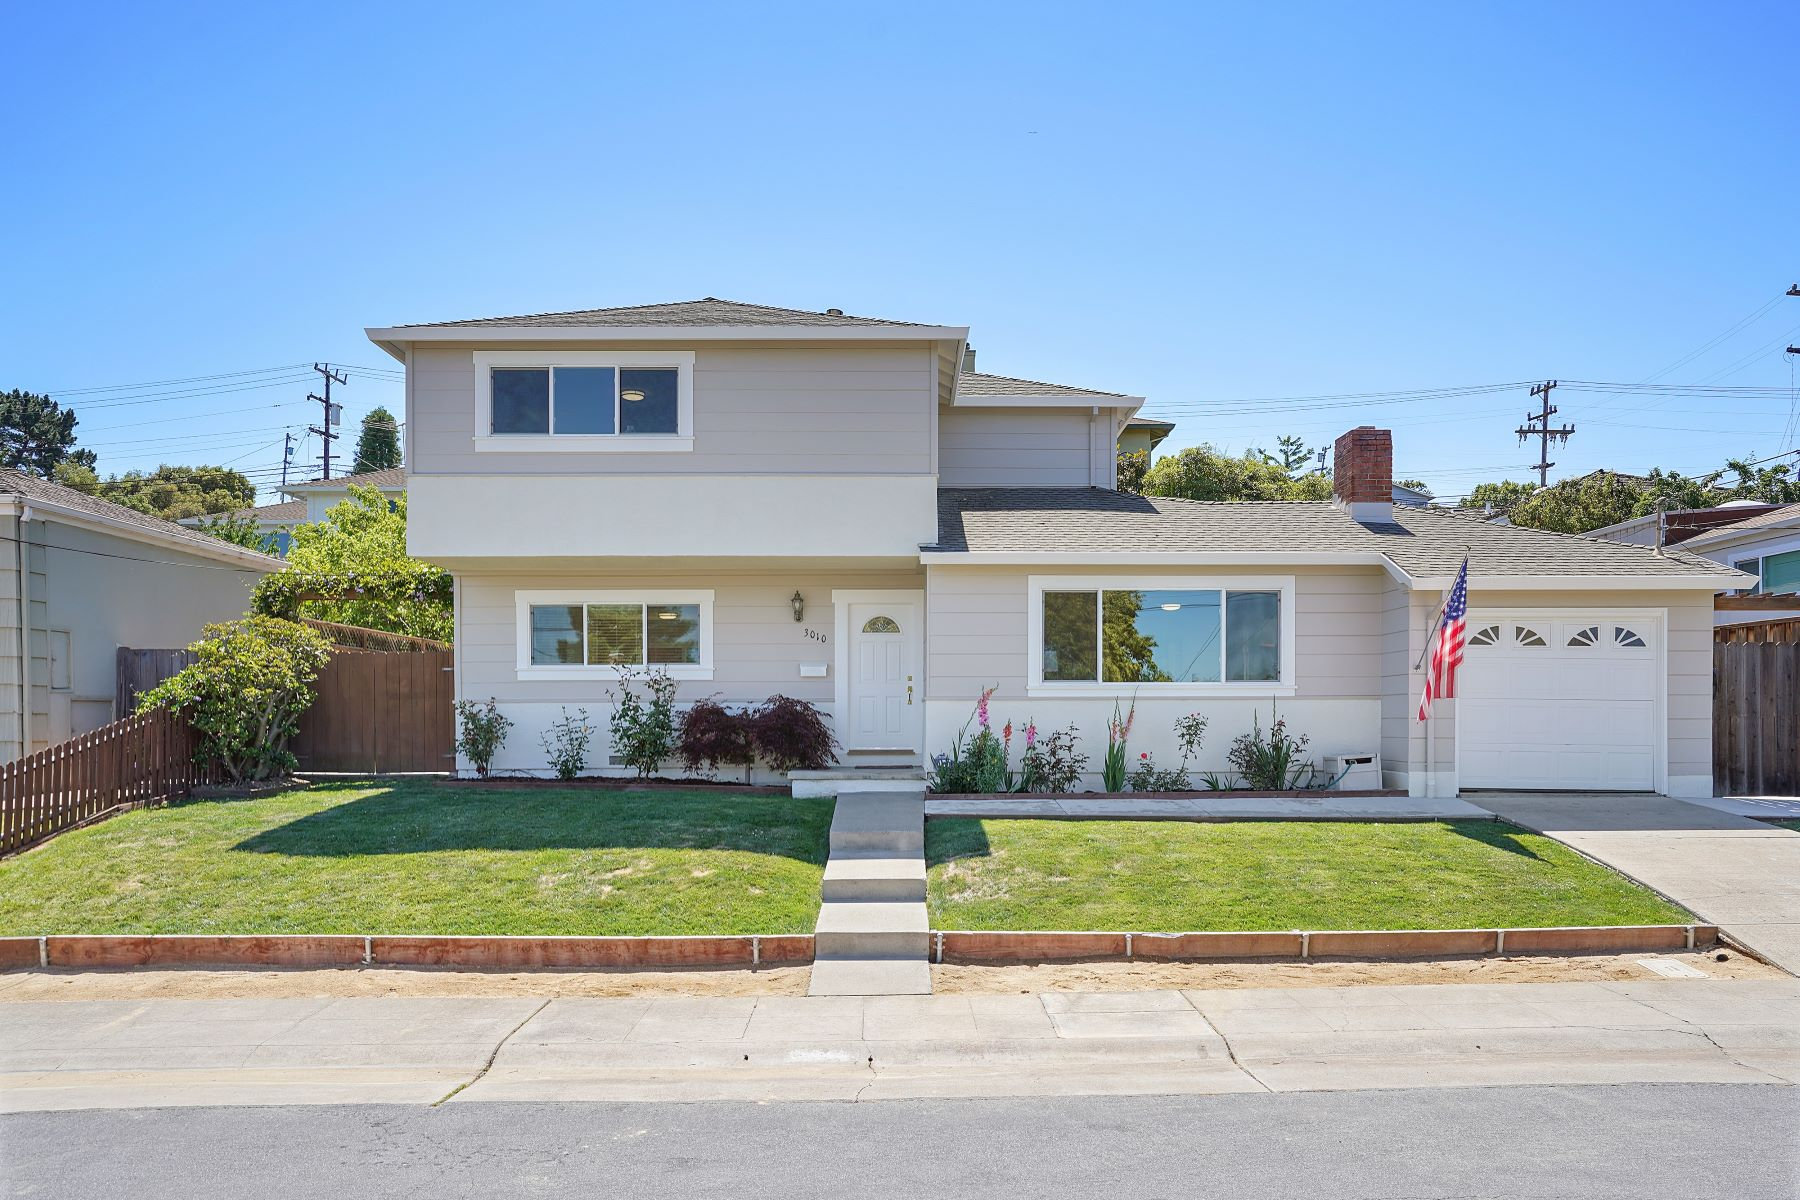 Single Family Homes for Active at Fabulous Home Located in One of San Mateo's Most Desirable Neighborhoods! 3010 Del Ray Street San Mateo, California 94403 United States